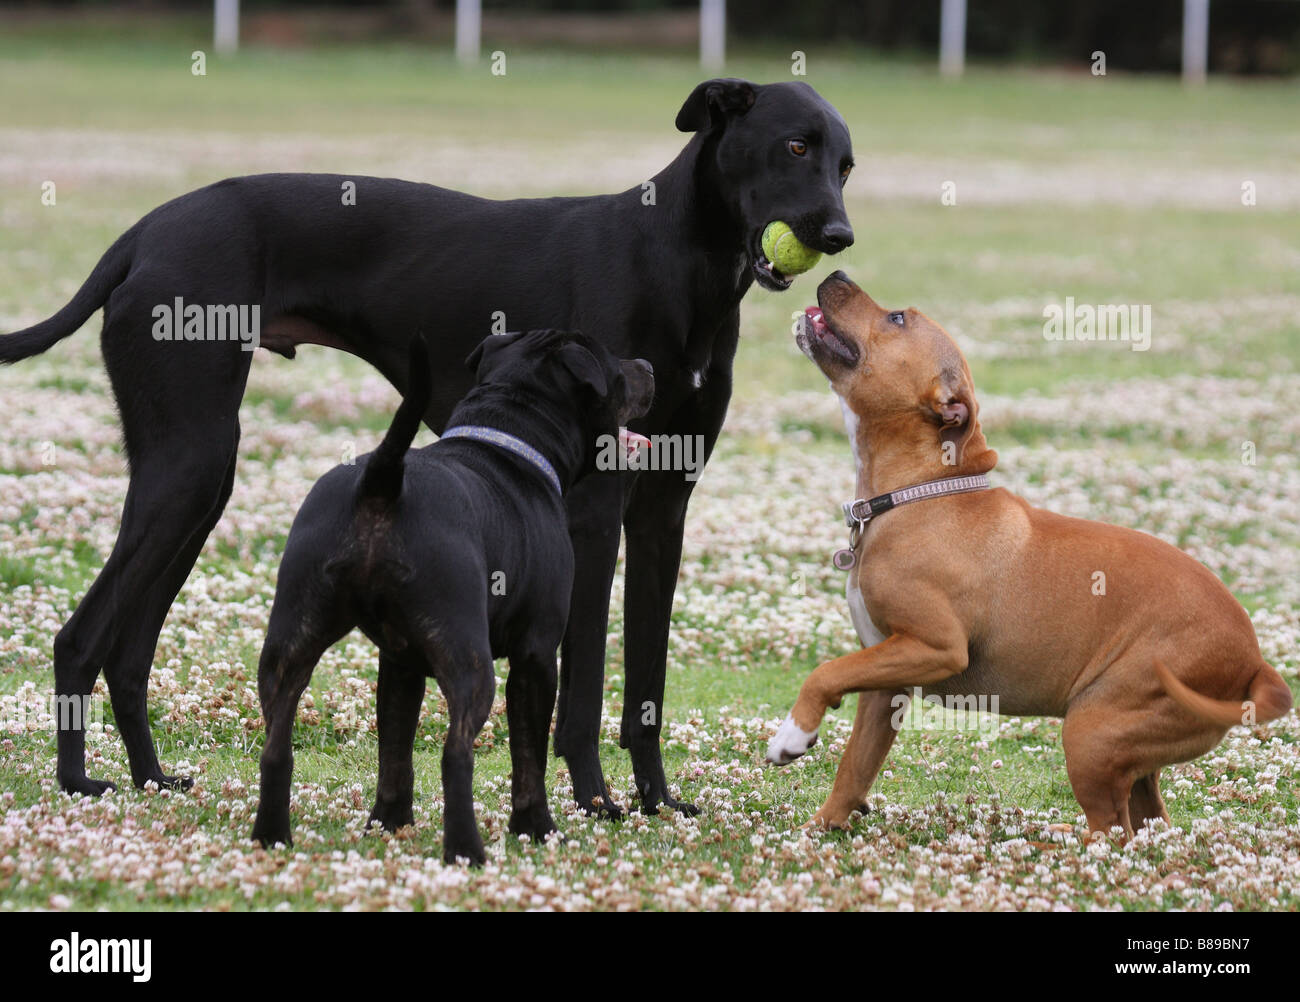 greyhound, with a tennis ball in its mouth, with two Staffordshire bull terriers - Stock Image